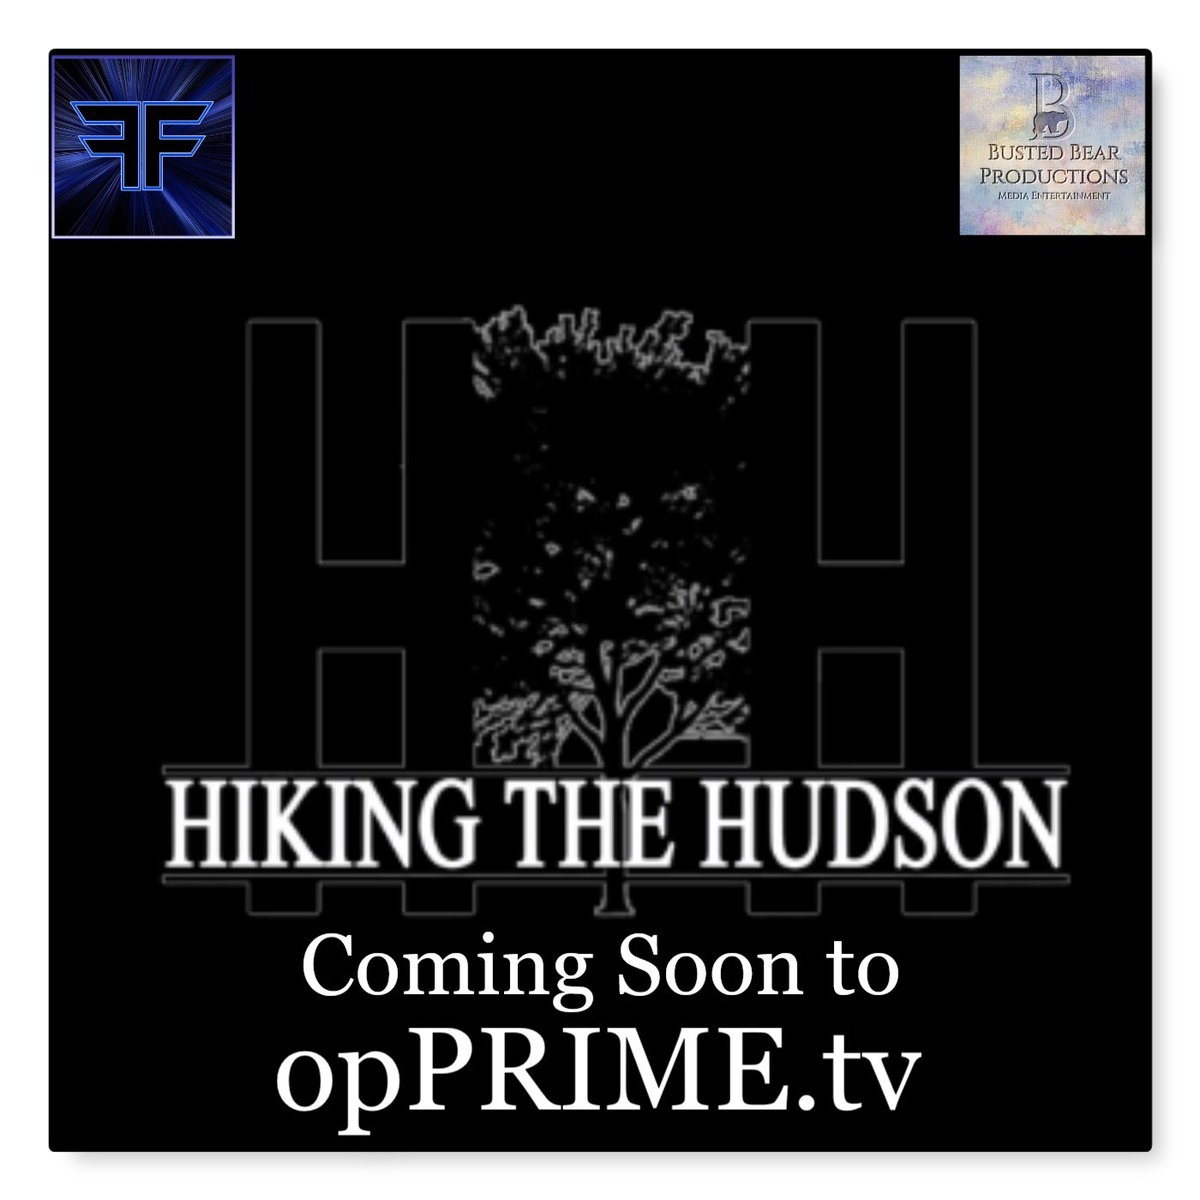 HIKING THE HUDSON—by @bustedbearprod on @opprimetv. Hike the trails of the Hudson Valley  #Television #Film #TV #TVshows #indiefilms<br>http://pic.twitter.com/MM7lHIaMpz